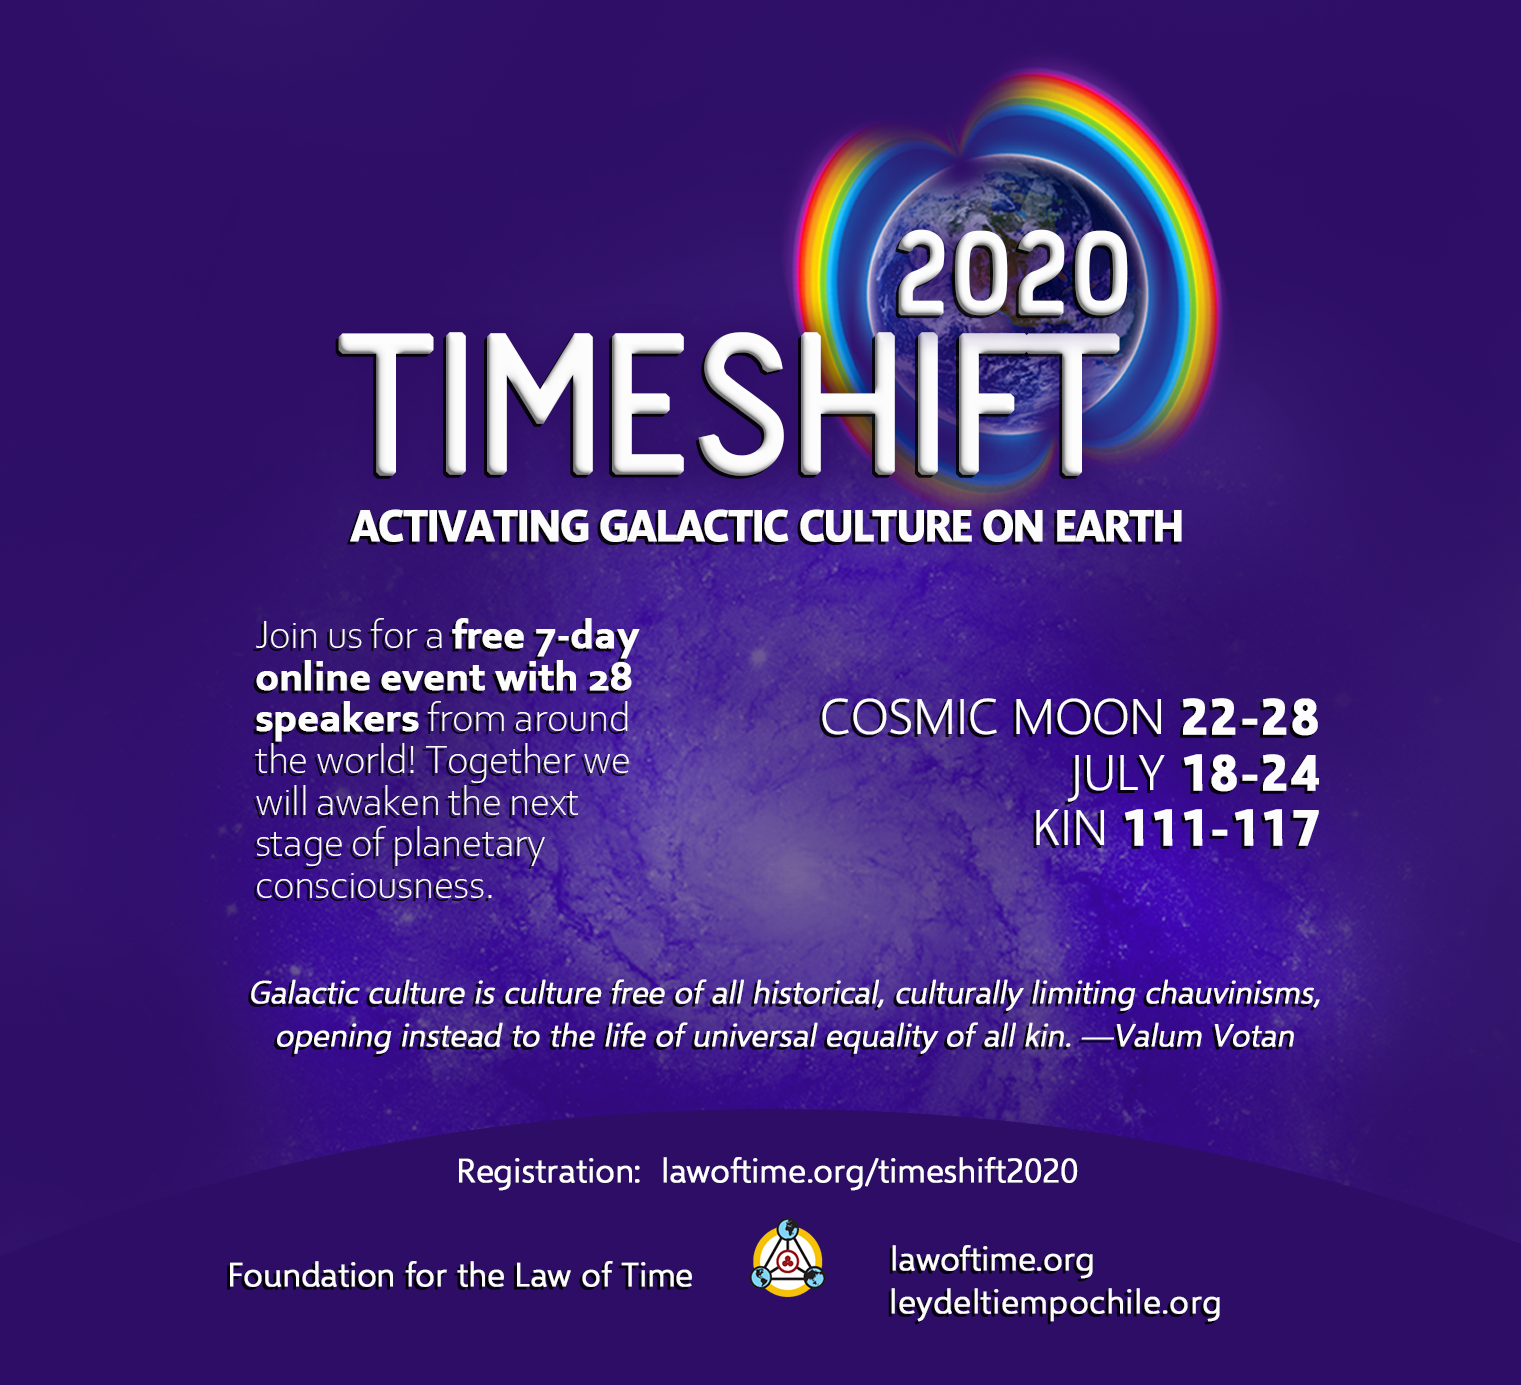 Timeshift 2020: Activating Galactic Culture